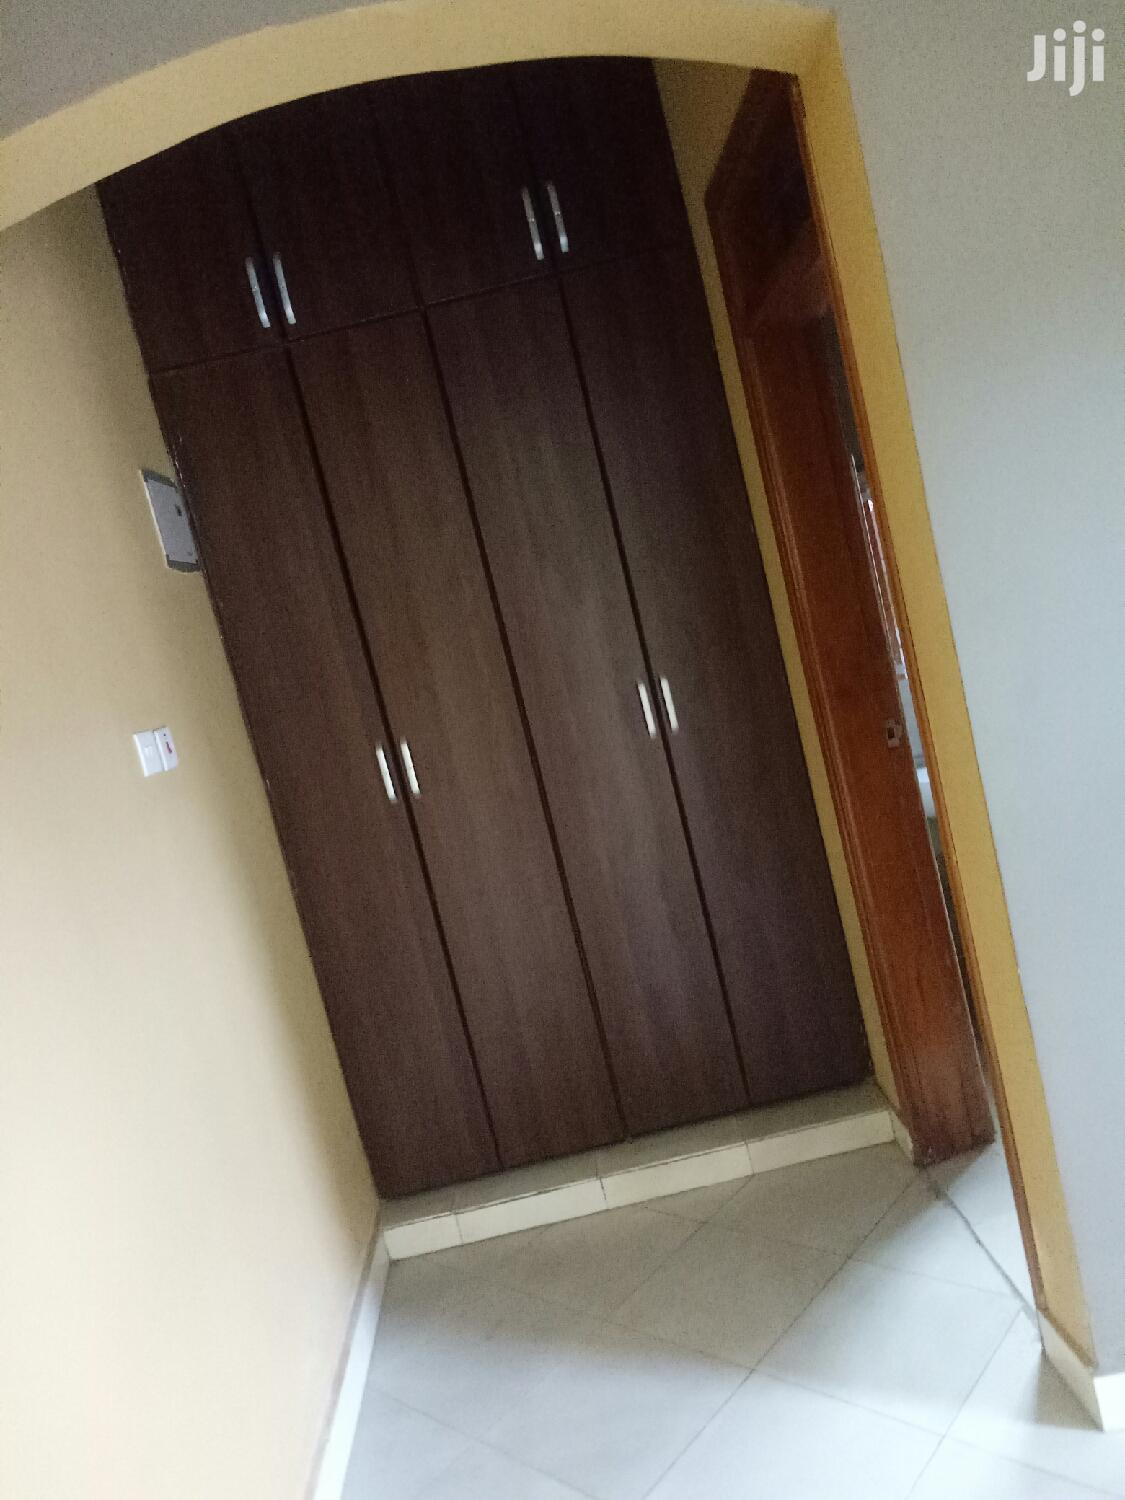 Archive: Kisasi Single Room Self Contained at 250k